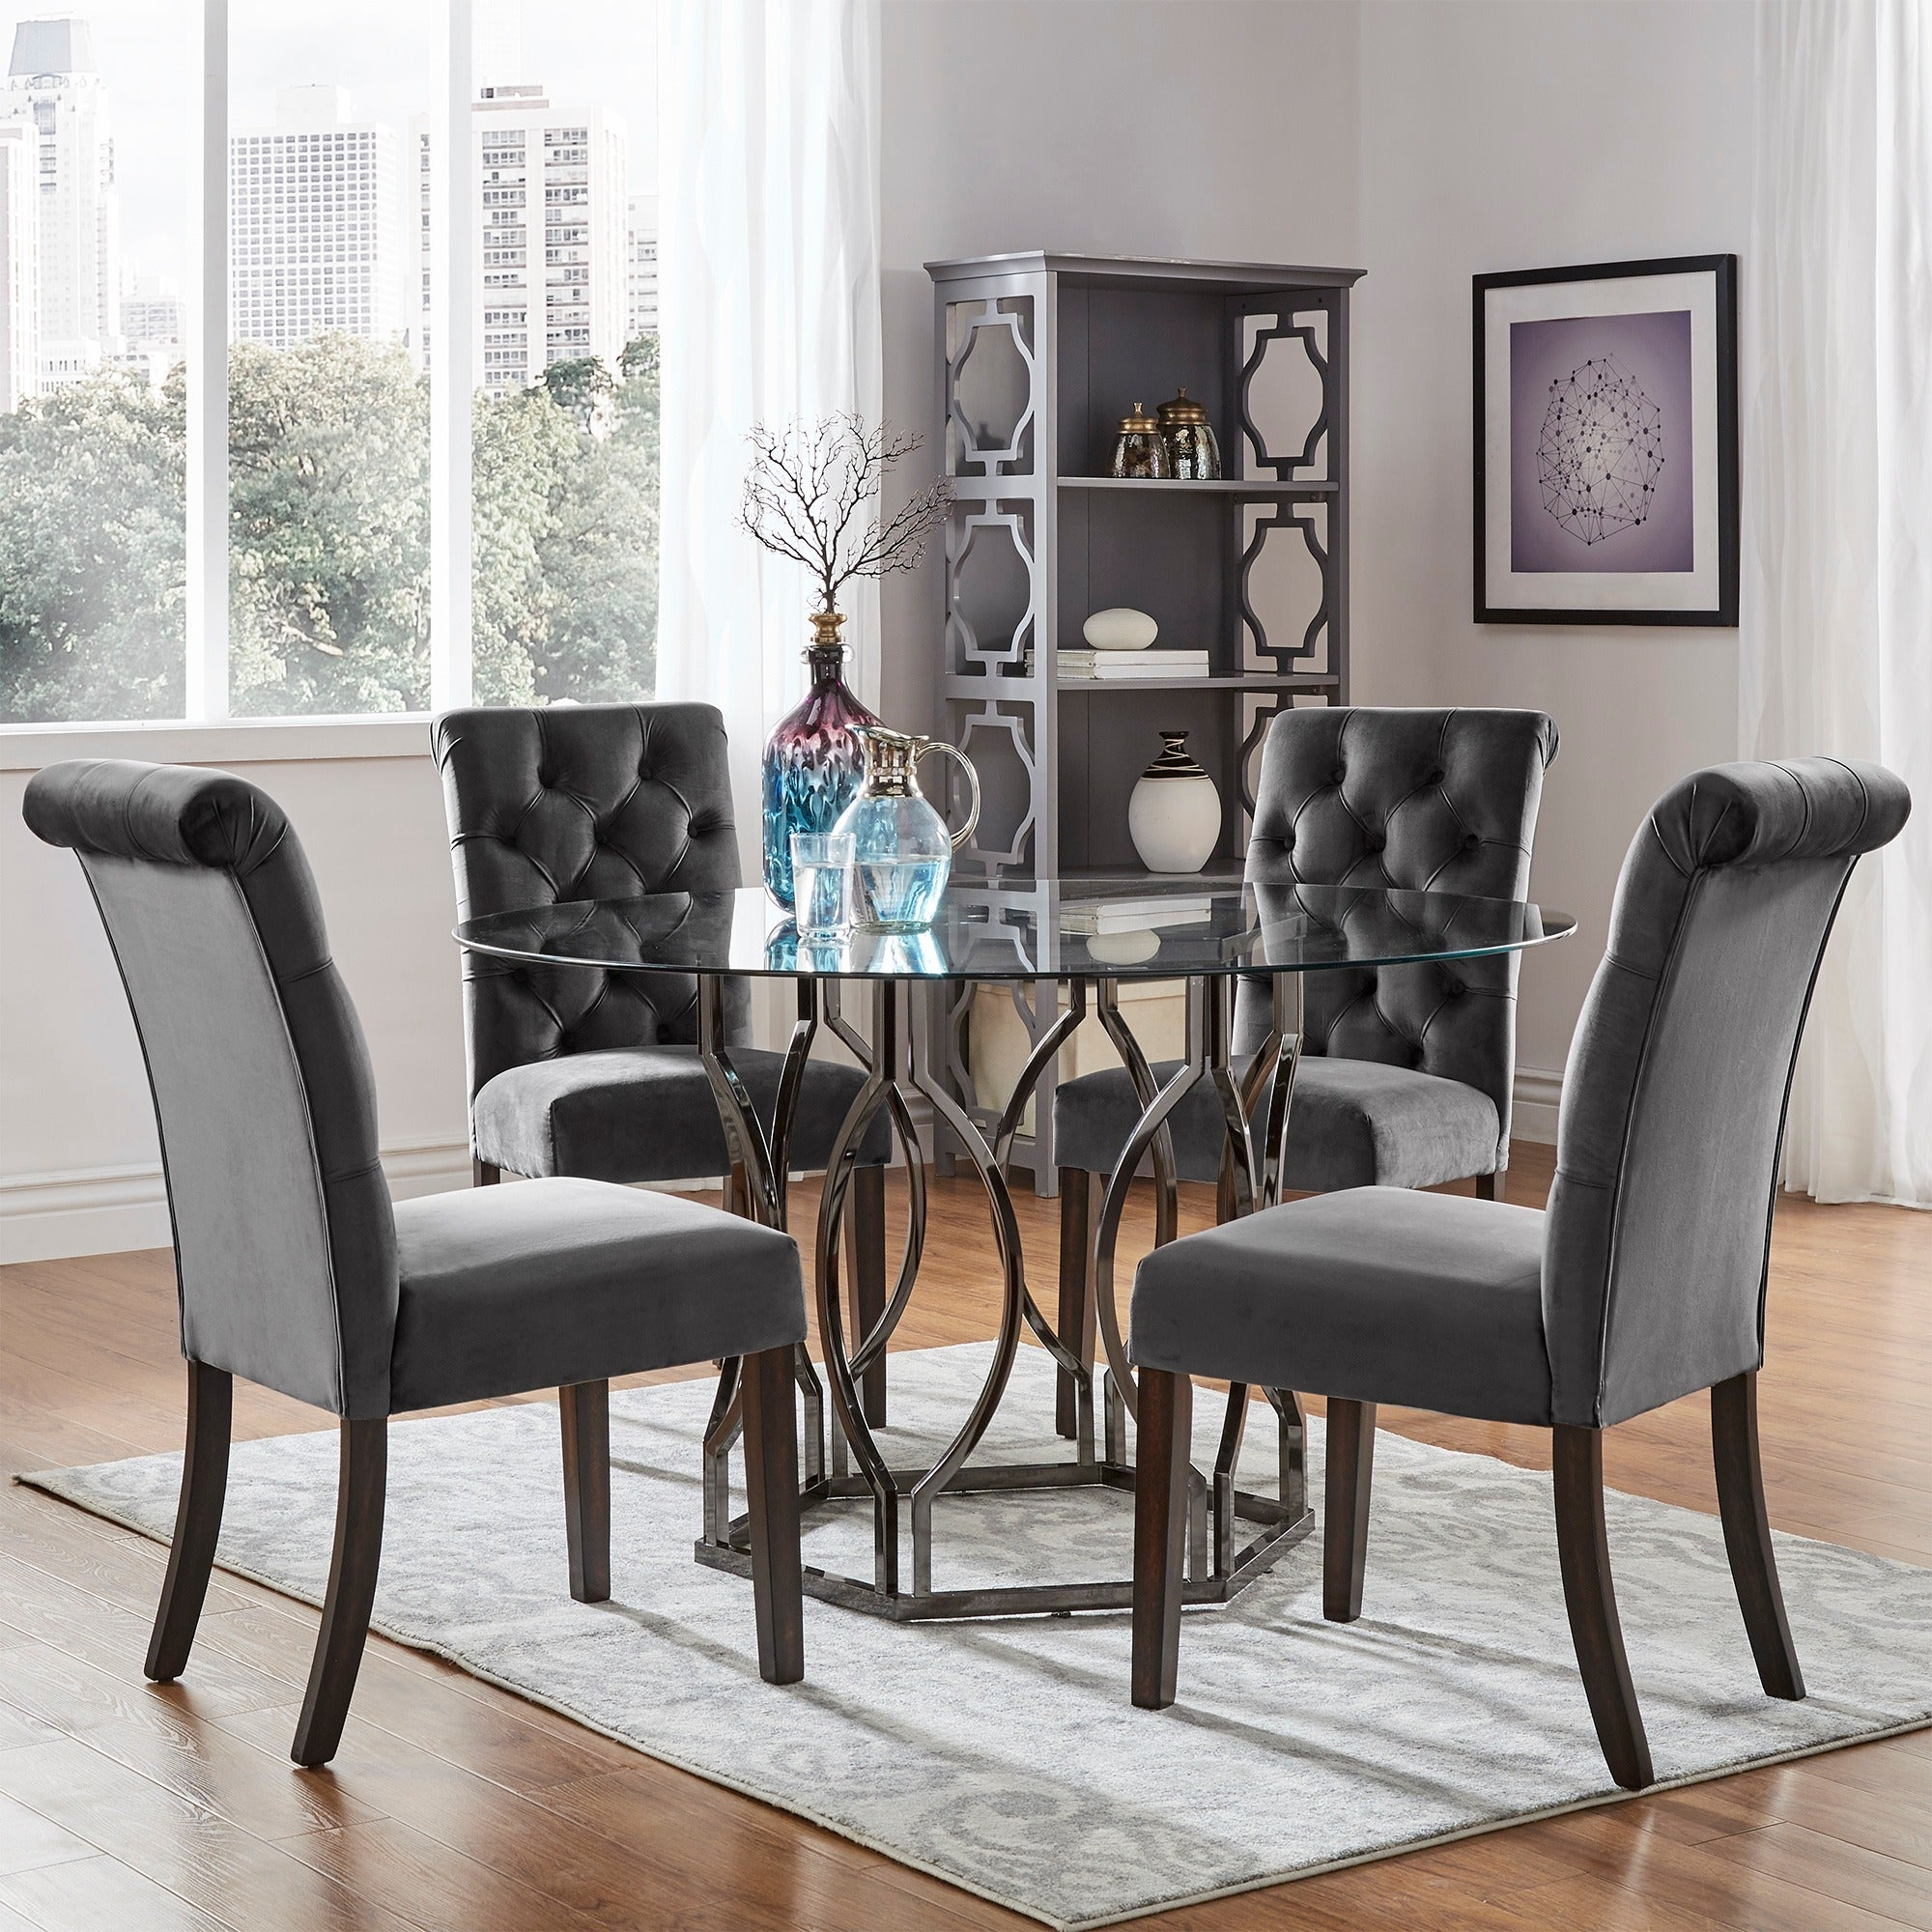 Benchwright Velvet Tufted Rolled Back Parsons Chairs (Set of 2) by iNSPIRE Q  Bold - Free Shipping Today - Overstock.com - 21832346